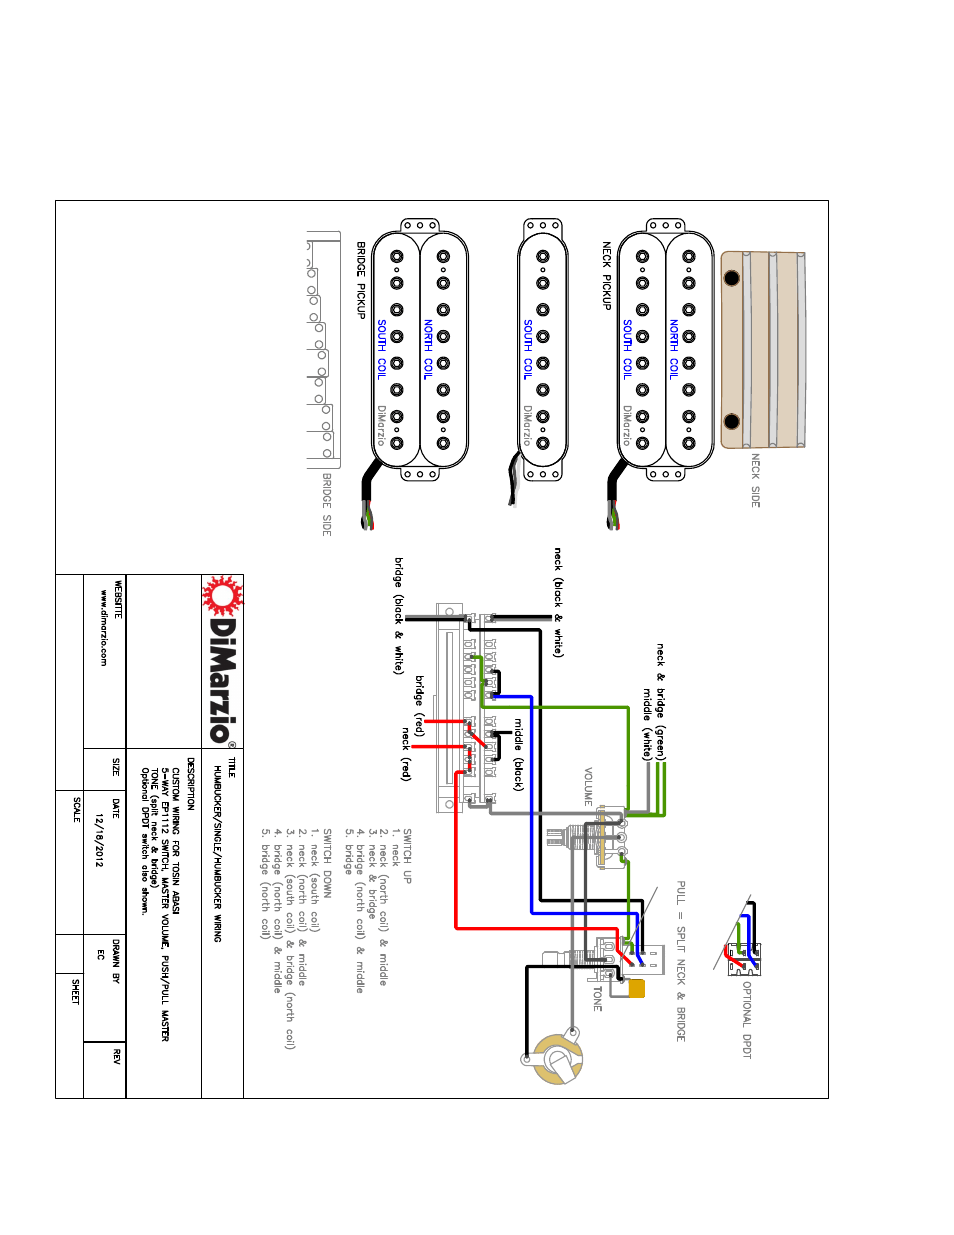 medium resolution of dimarzio 5 way switch wiring diagram 36 wiring diagram rotary lamp switch wiring diagram rotary switch wiring diagram forward and reverse